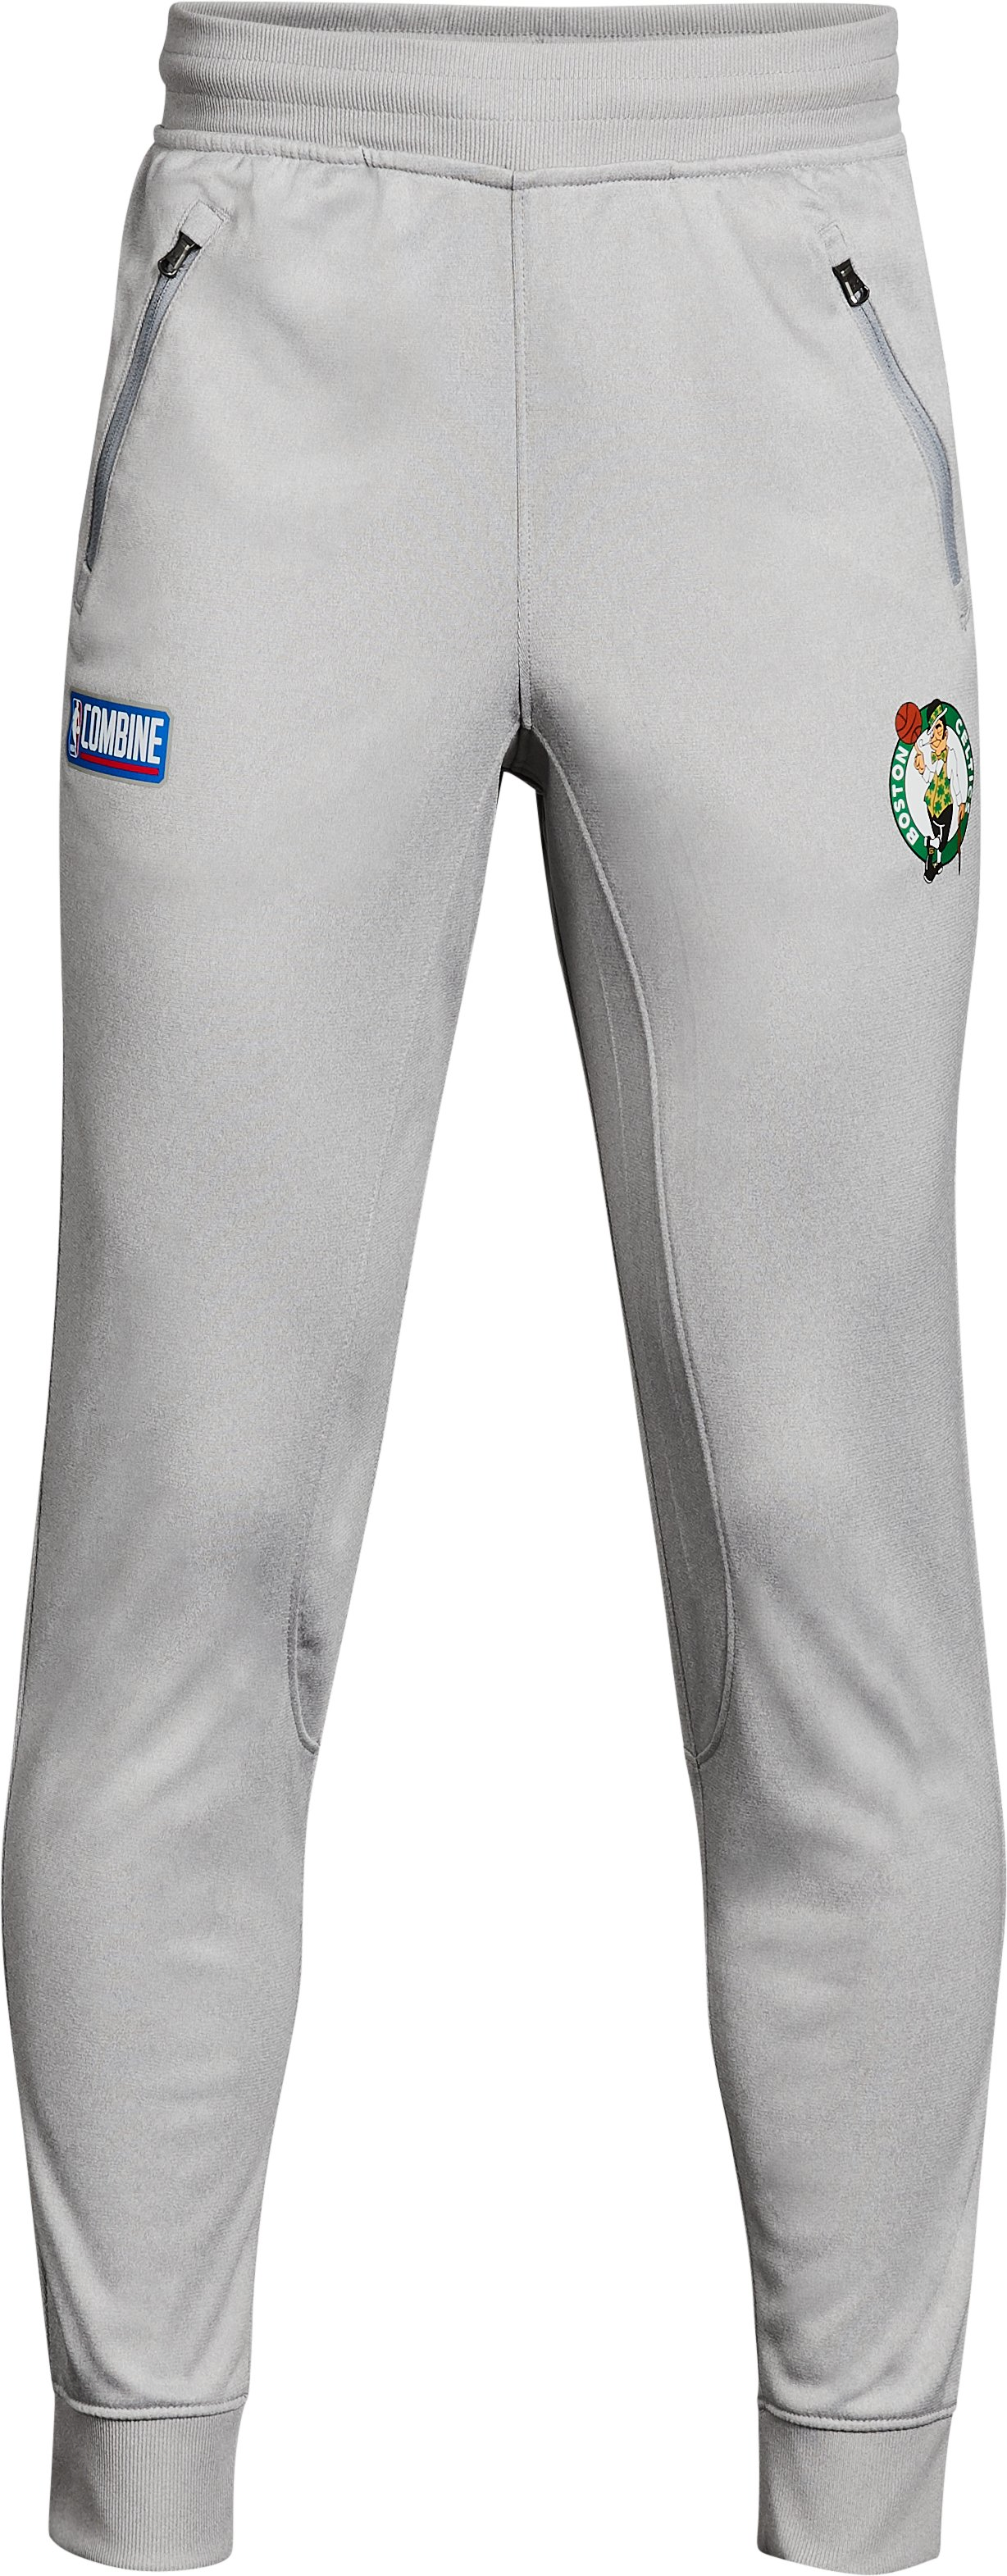 Boys' NBA Combine UA Pennant Joggers, NBA_BOSTON CELTICS_TRUE GREY HEATHER